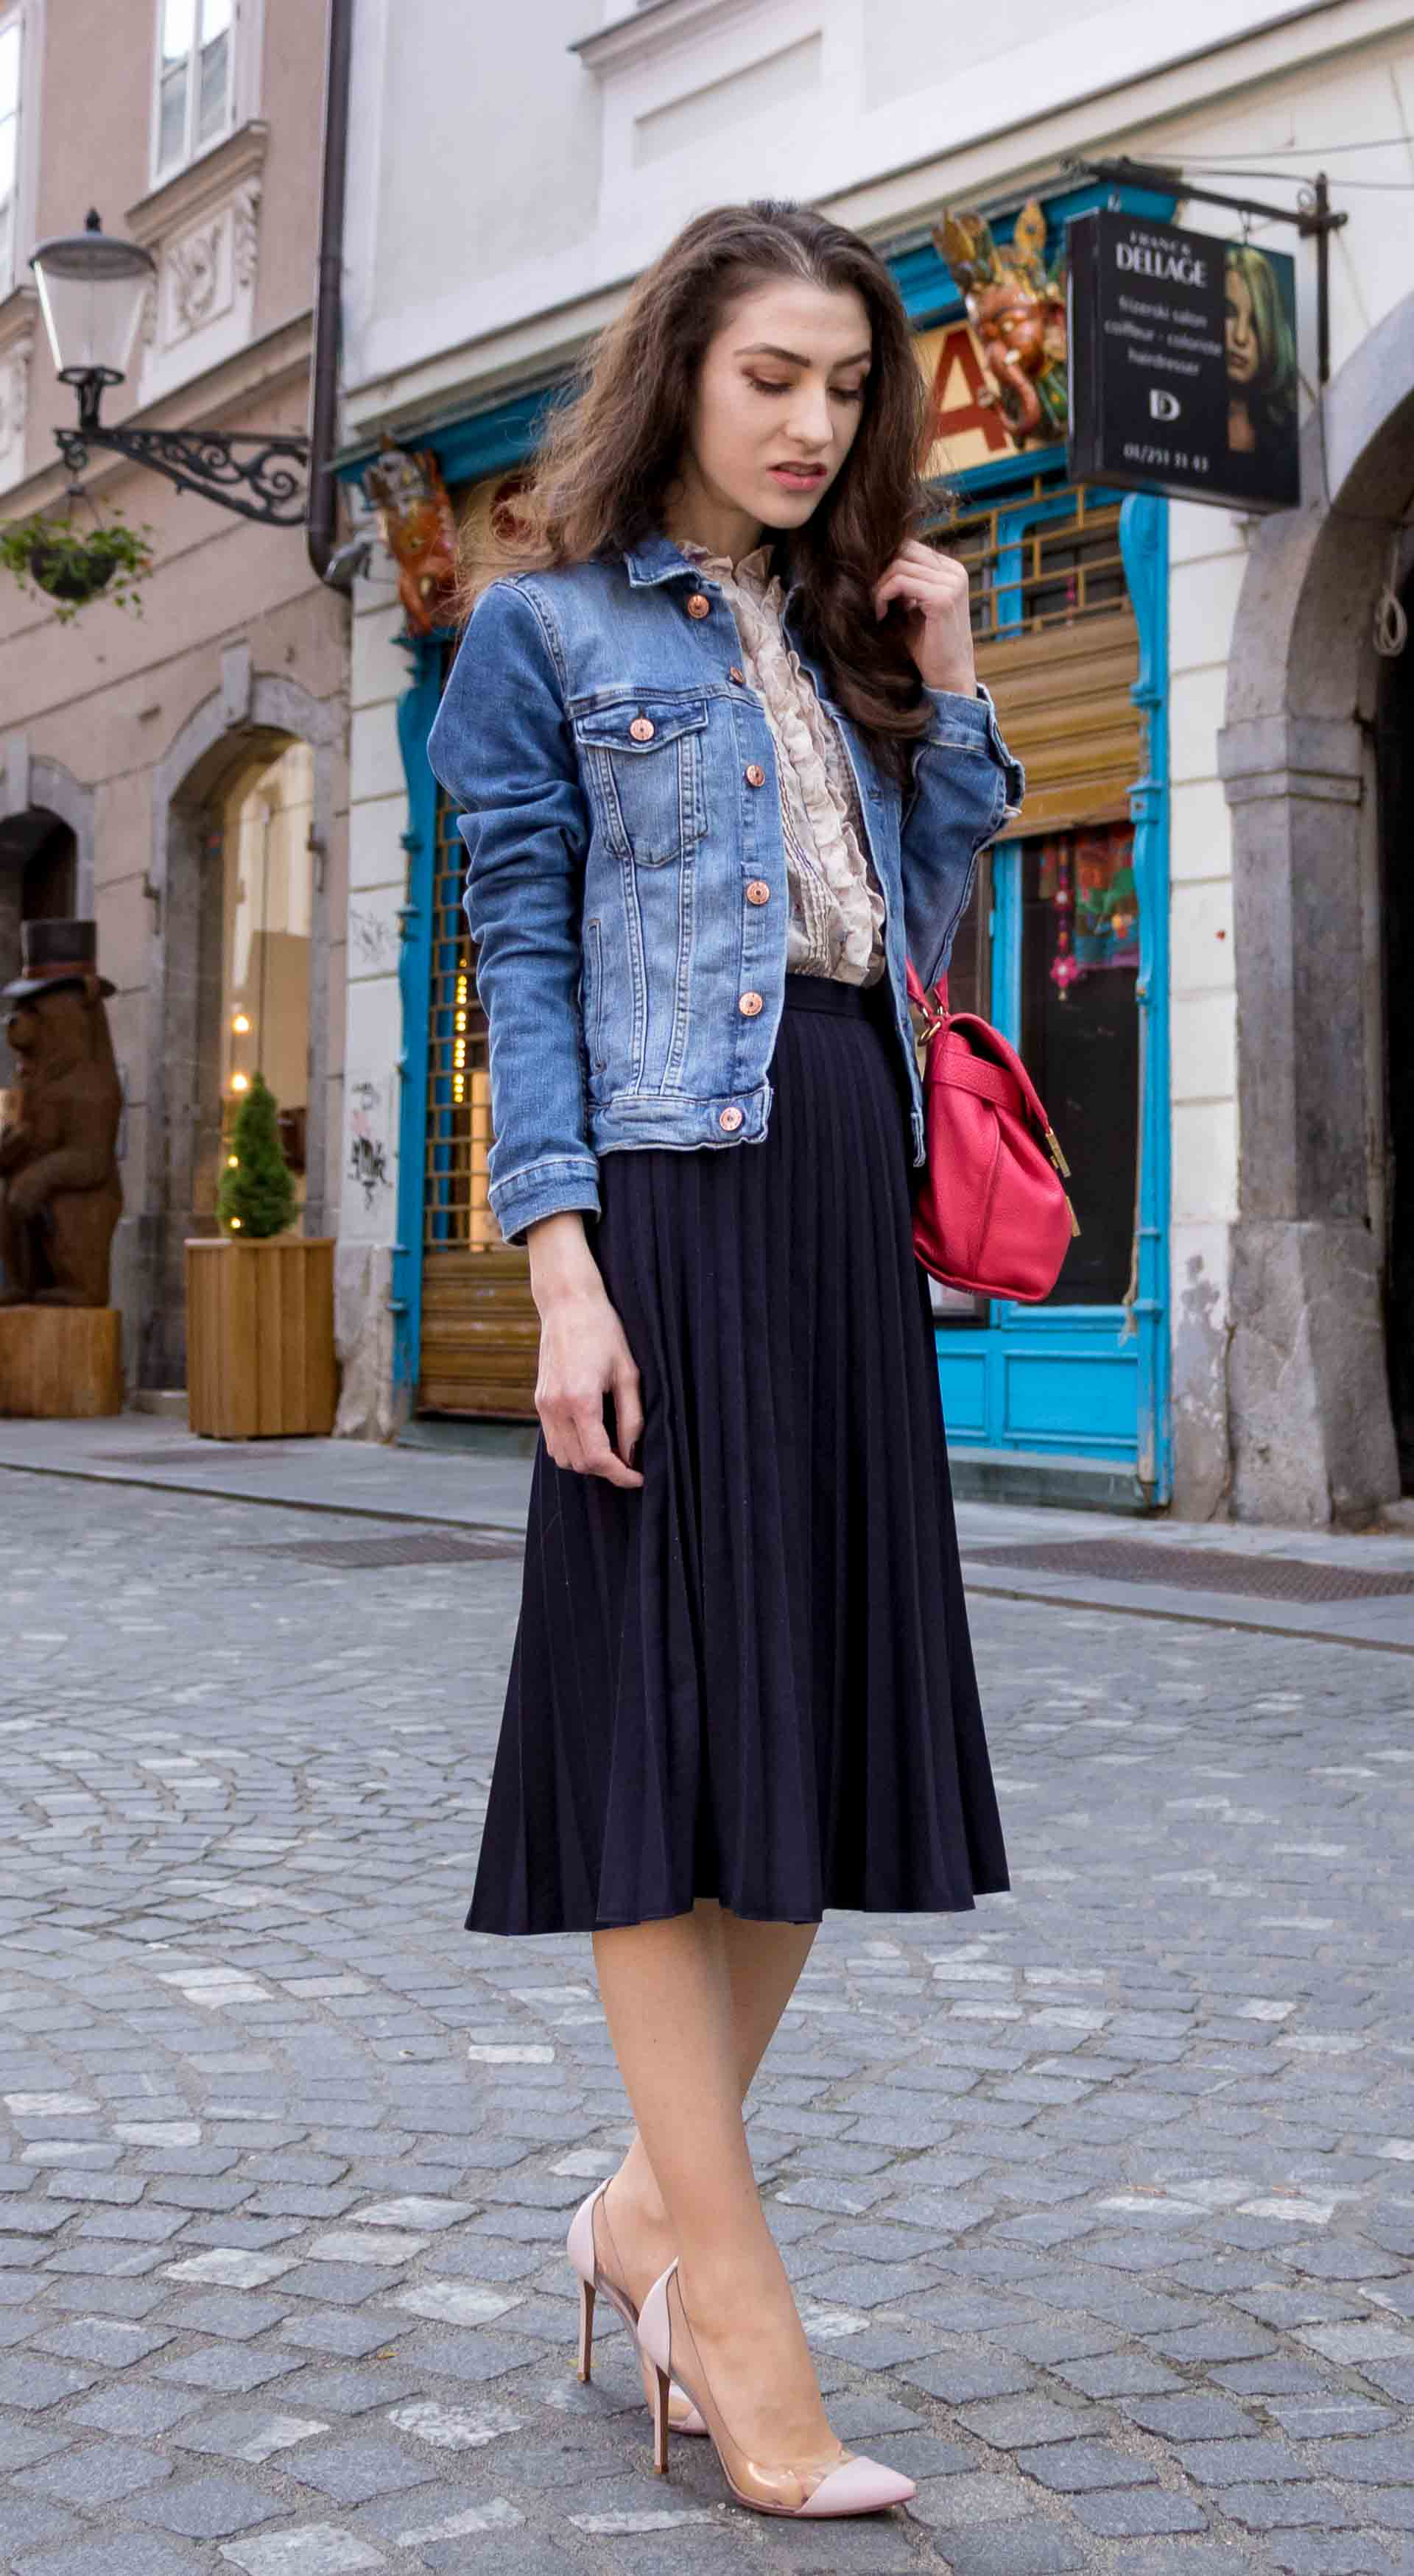 Veronika Lipar Fashion Blogger of Brunette from Wall Street wearing H&M denim jacket, floral blouse, midi pleated skirt, Gianvito Rossi plexi pumps, pink top handle bag while posing on the street in Ljubljana